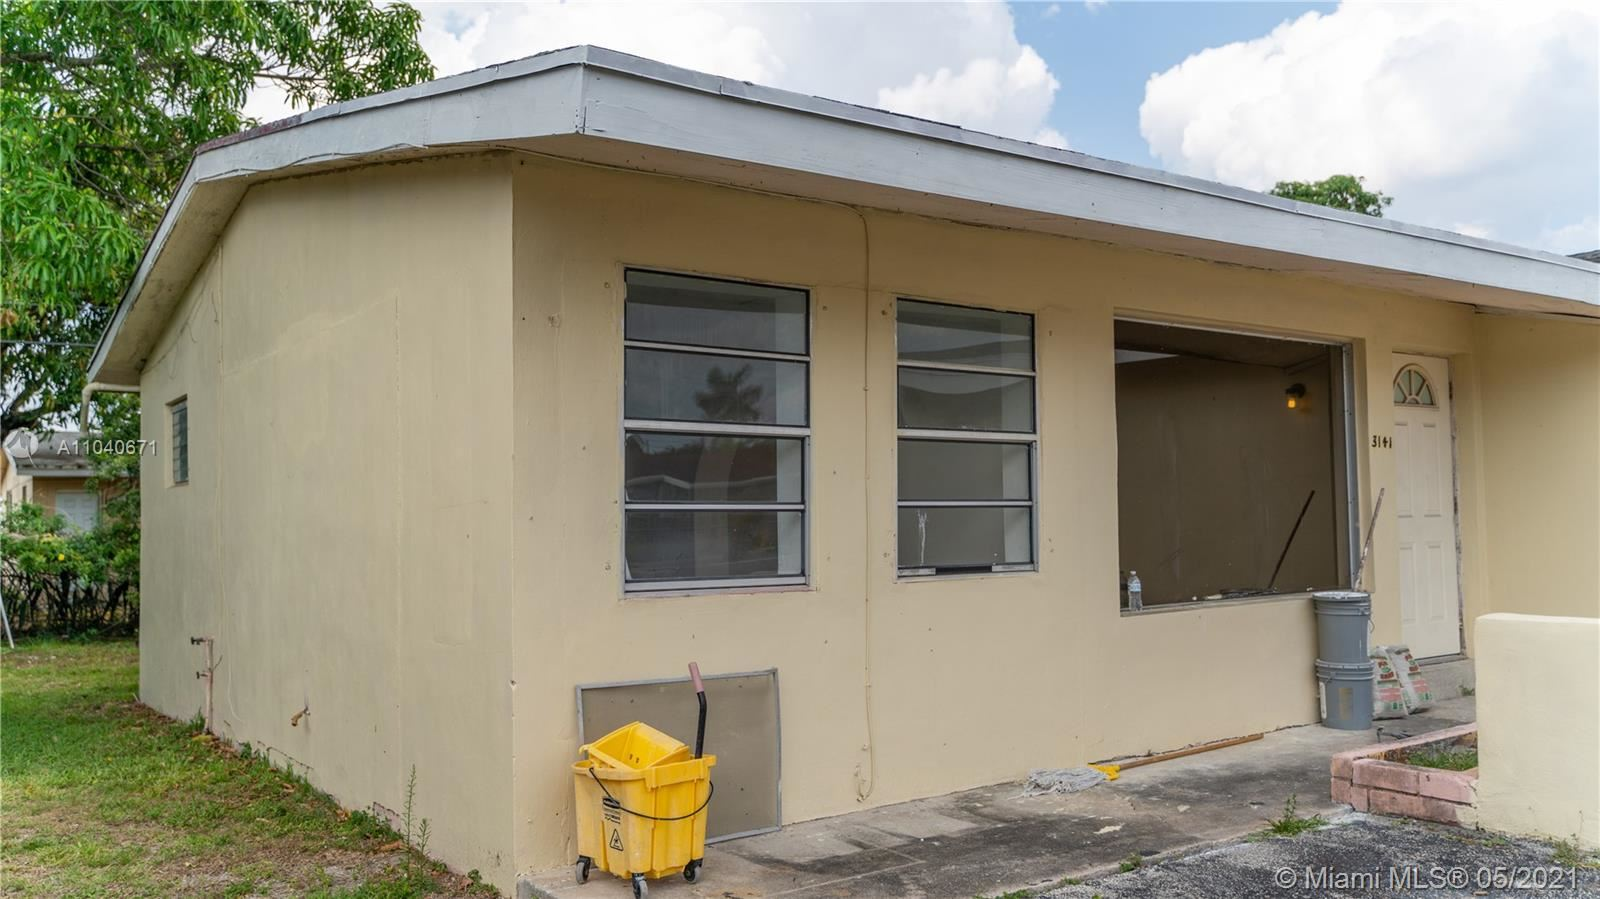 Photo of 3141 NW 4th Ct, Lauderhill, FL 33311 (MLS # A11040671)